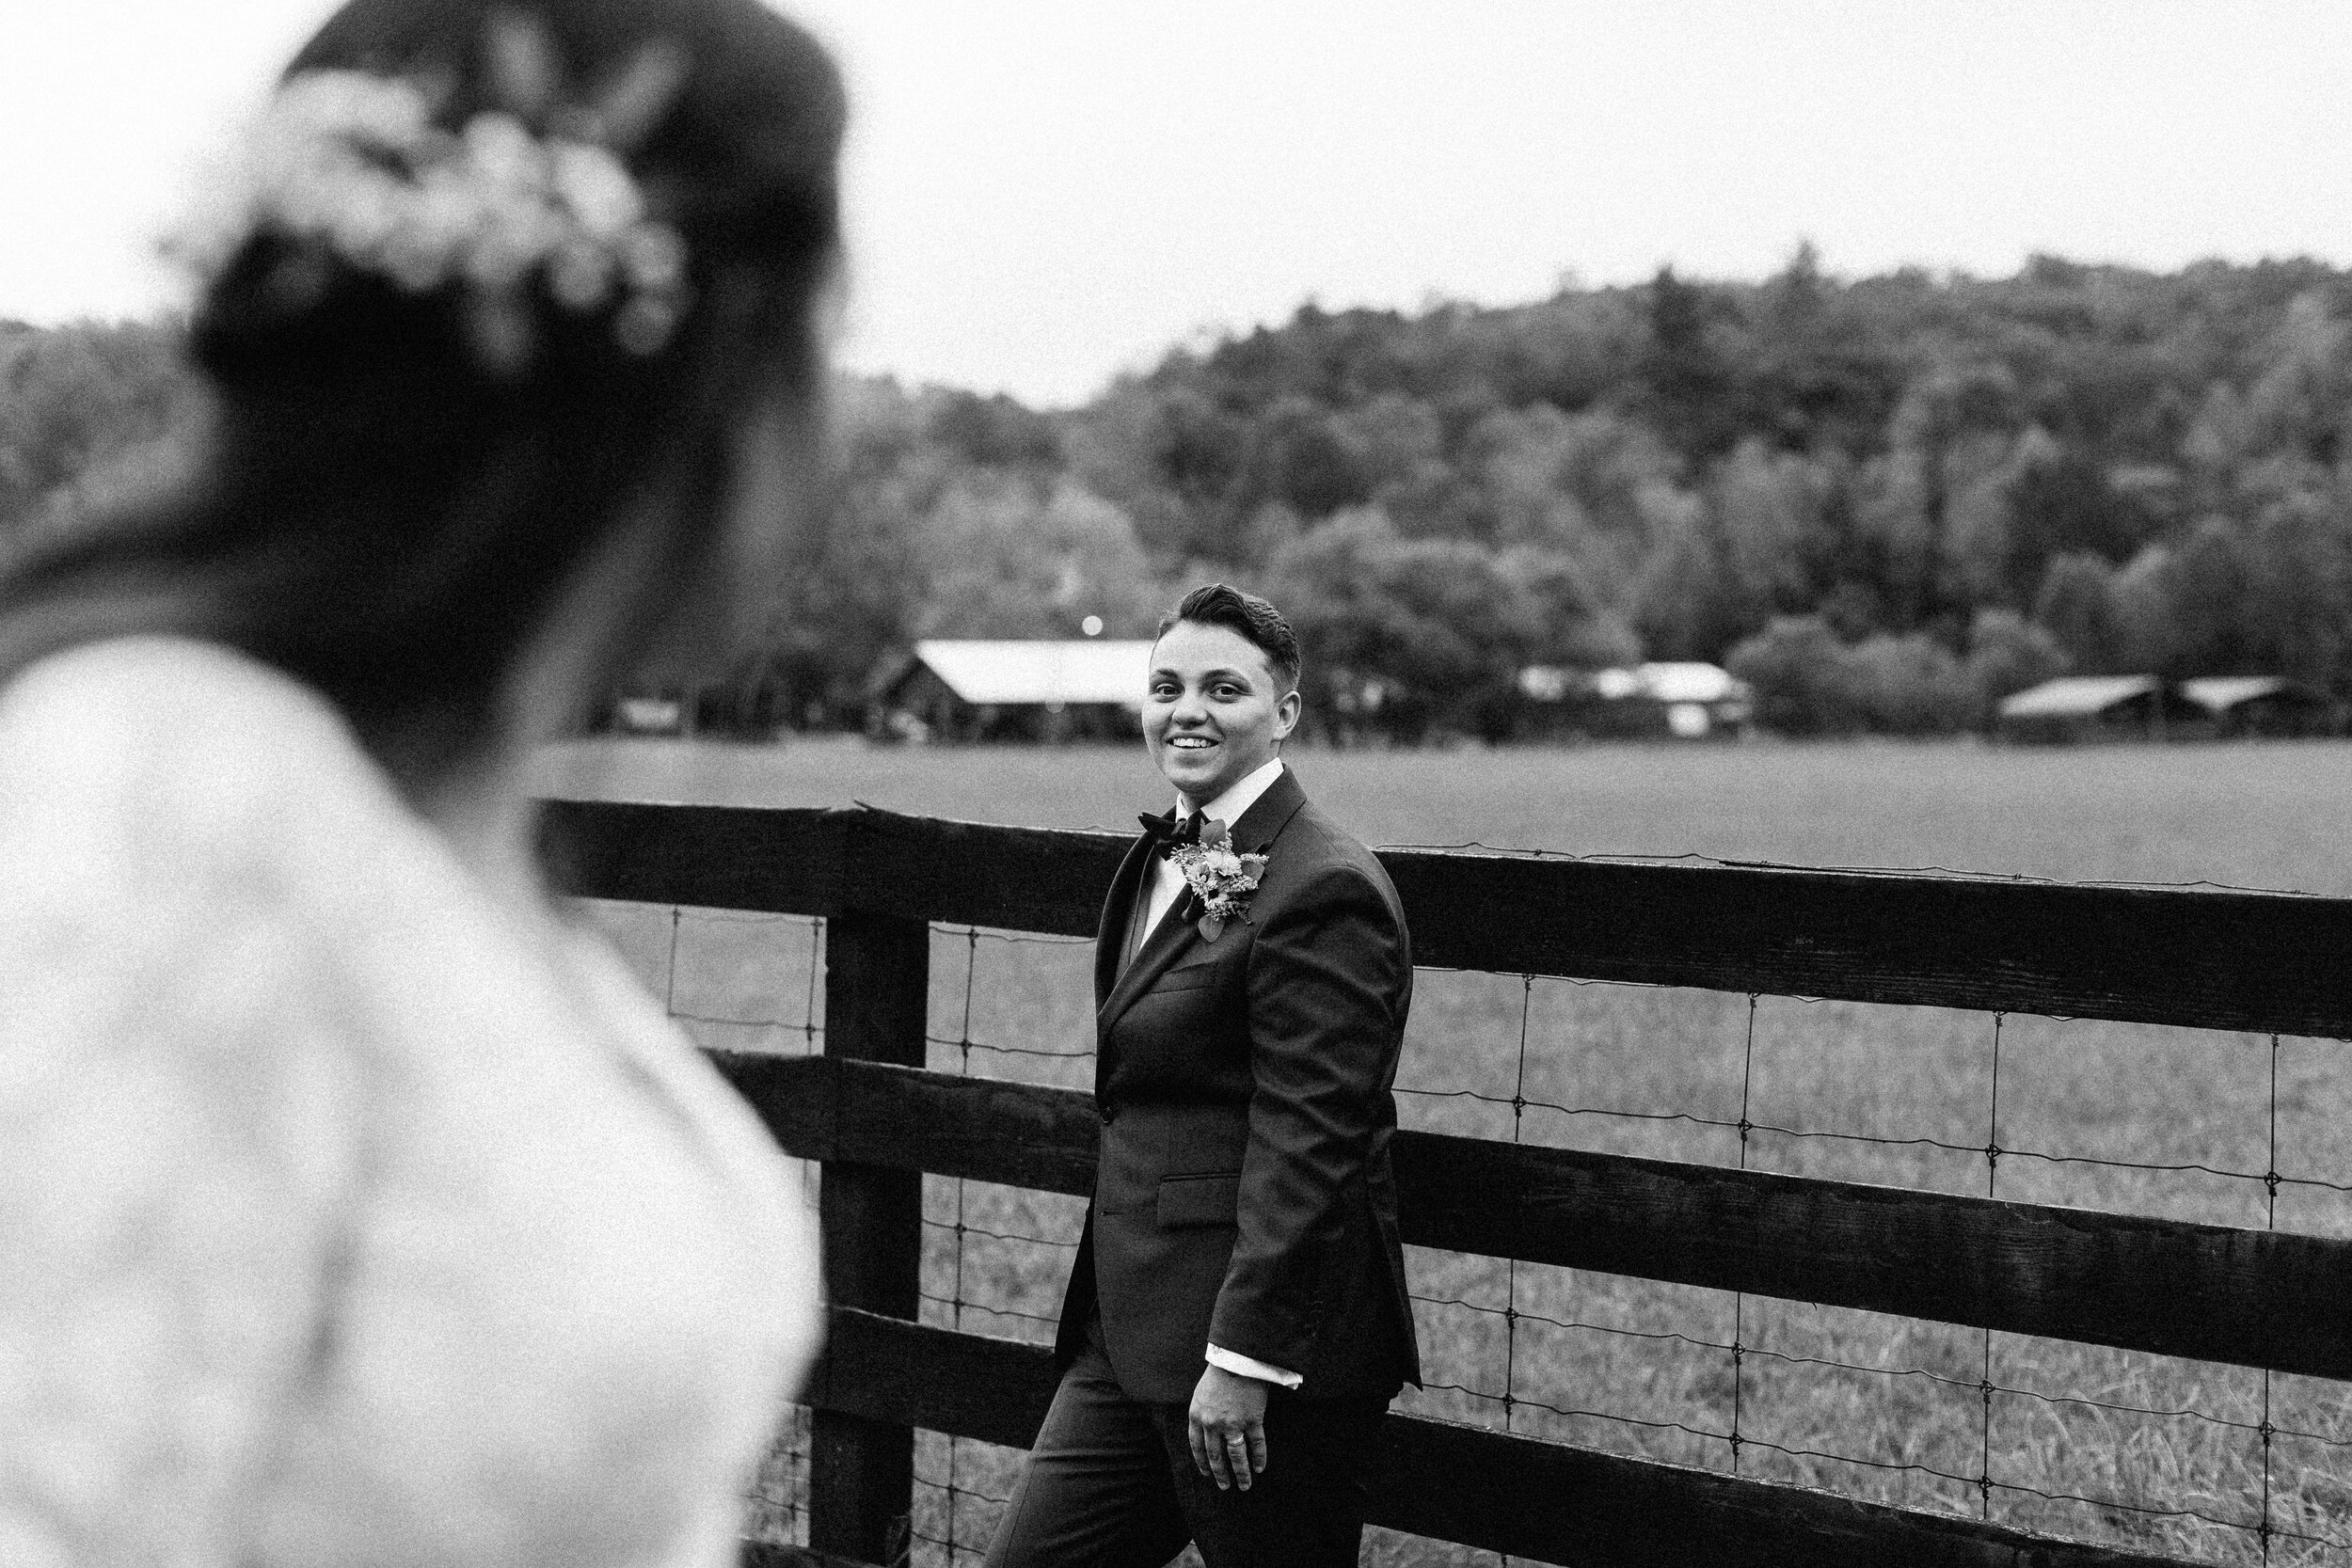 atlanta_wedding_photographers_georgia_same_sex_rustic_barn_farm_lesbian_weddings_inclusive_2273.jpg